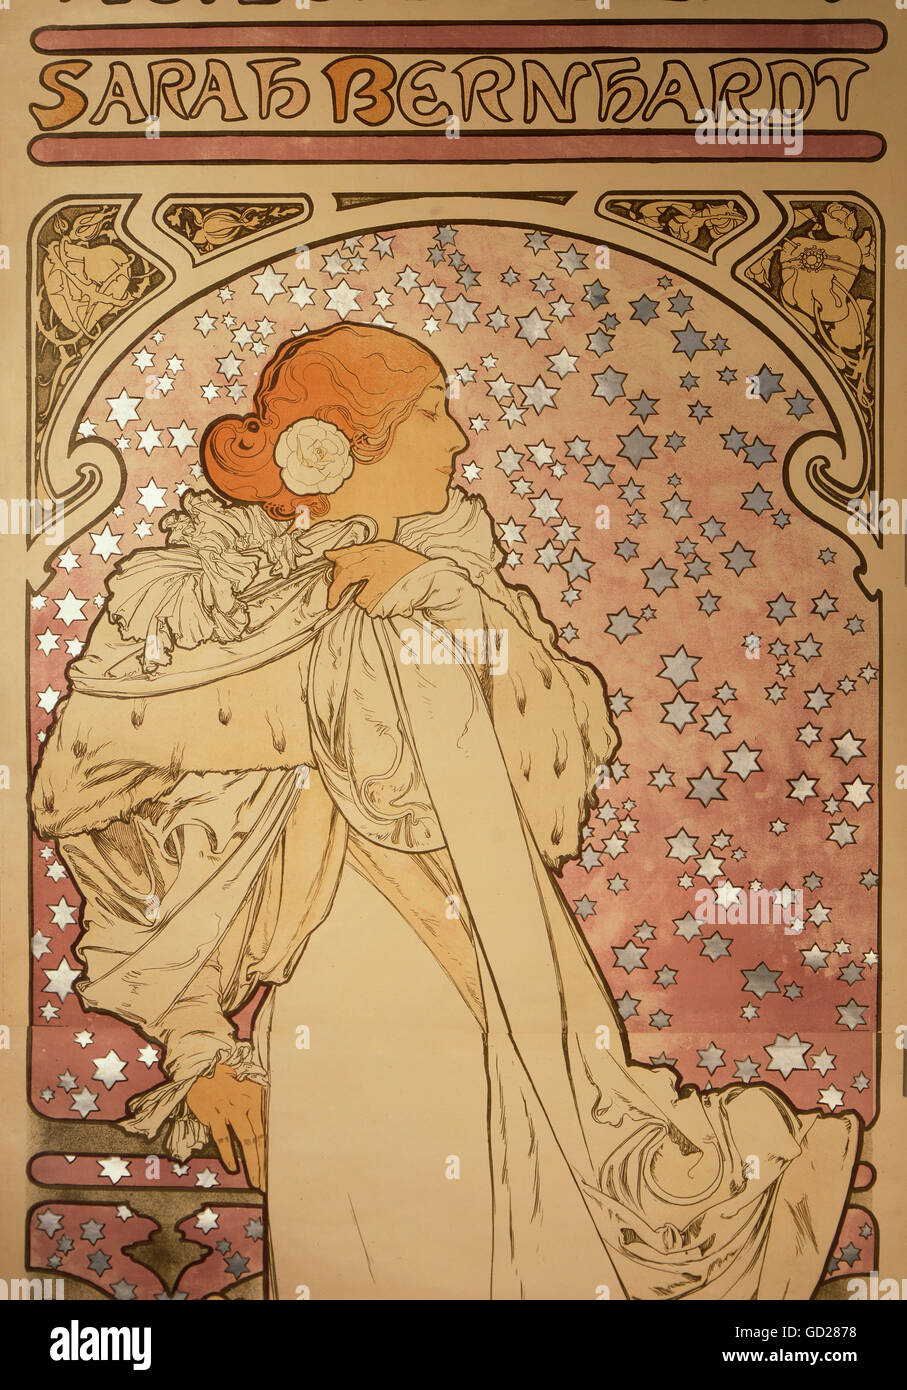 fine arts, Mucha, Alphonse (1860 - 1939), poster, detail from an advertising poster of the Theatre de la Renaissance, Stock Photo